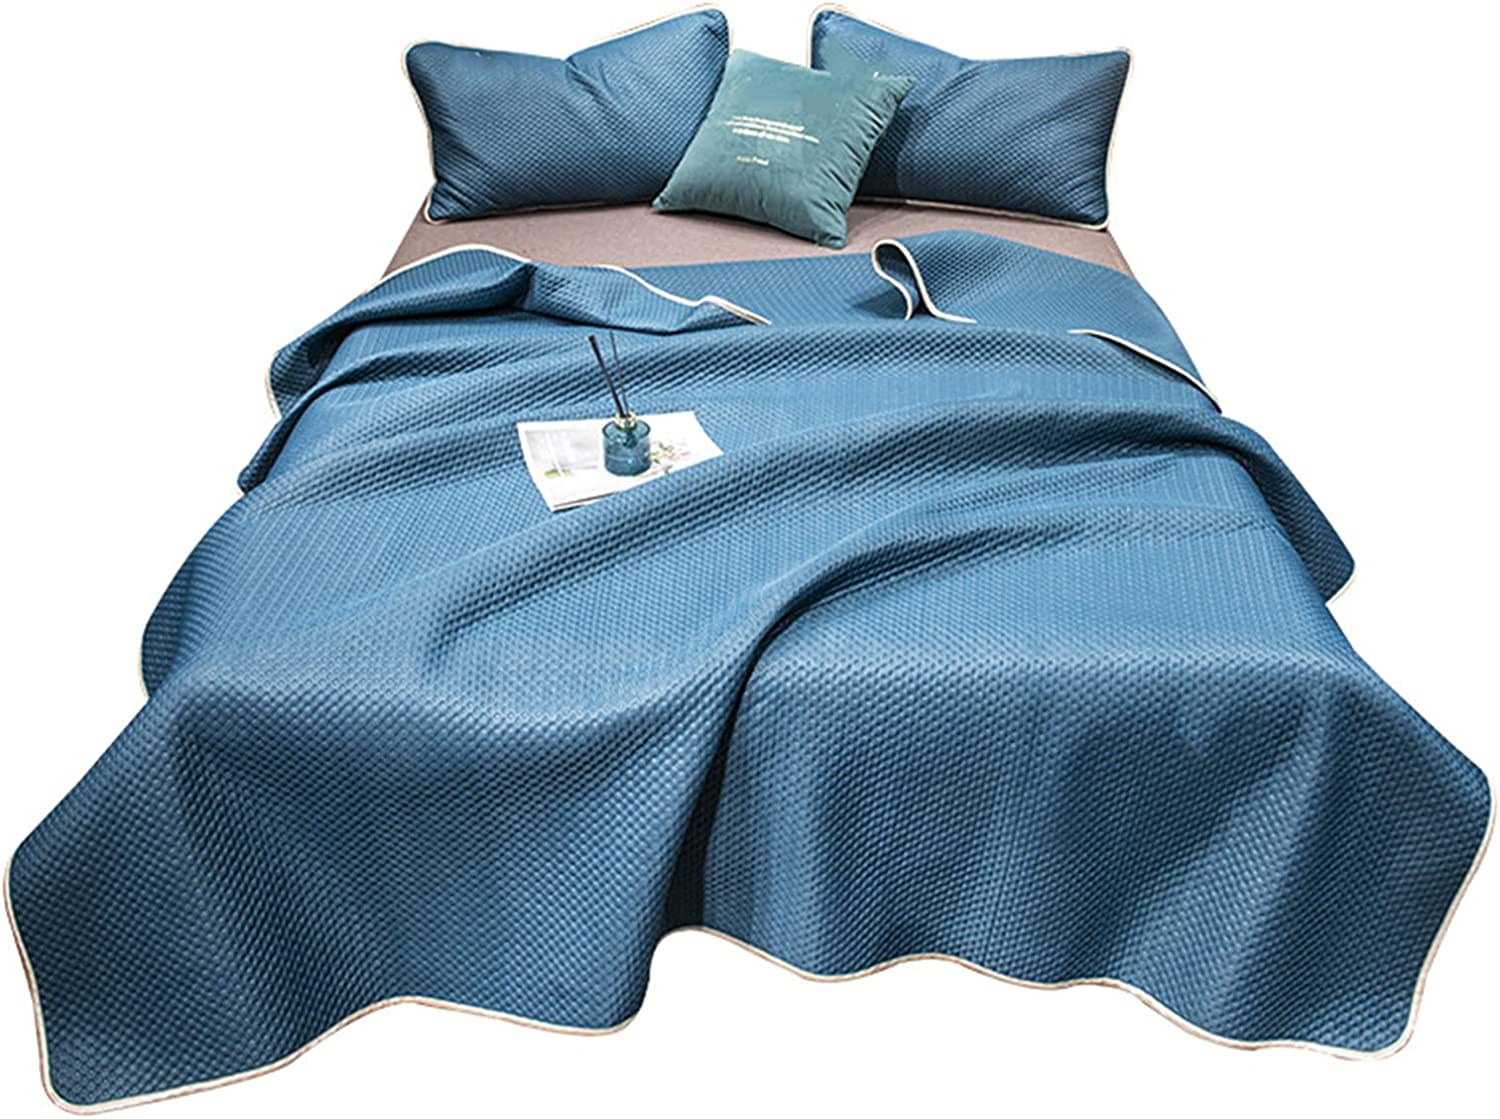 ZS ZHISHANG Limited price Cooling Blanket for wit Summer Sleepers Hot quality assurance Blankets